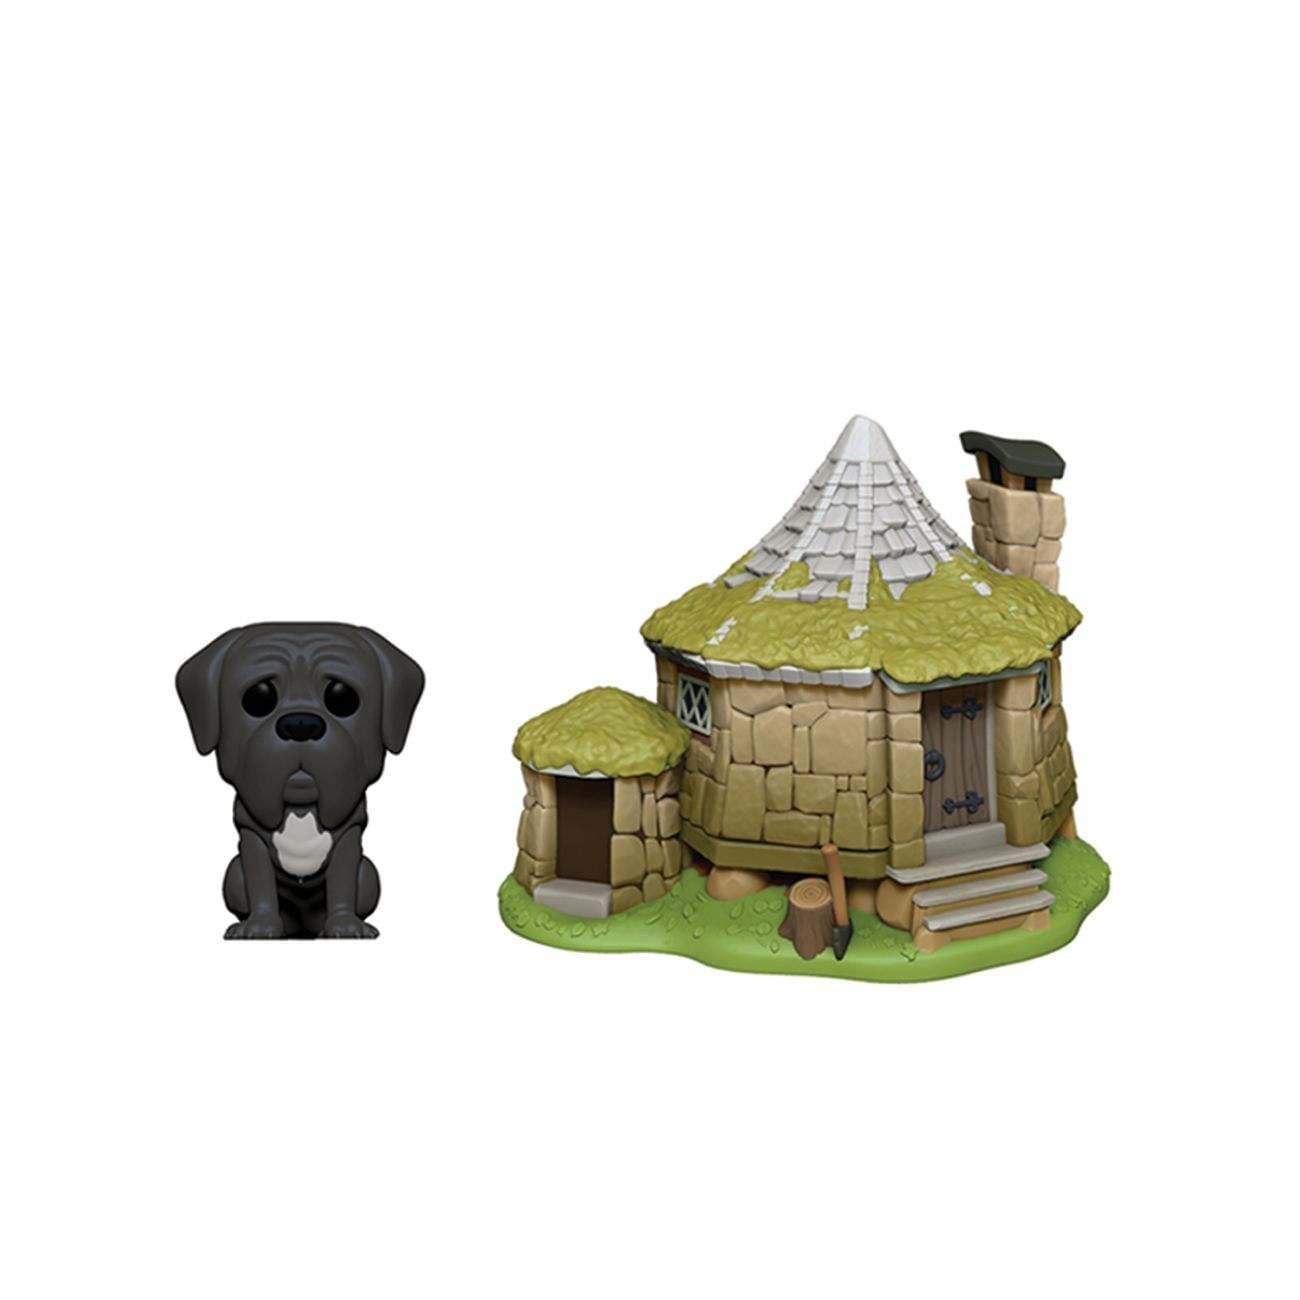 Harry Potter – Fang with Hagrid's Hut Pop! Town